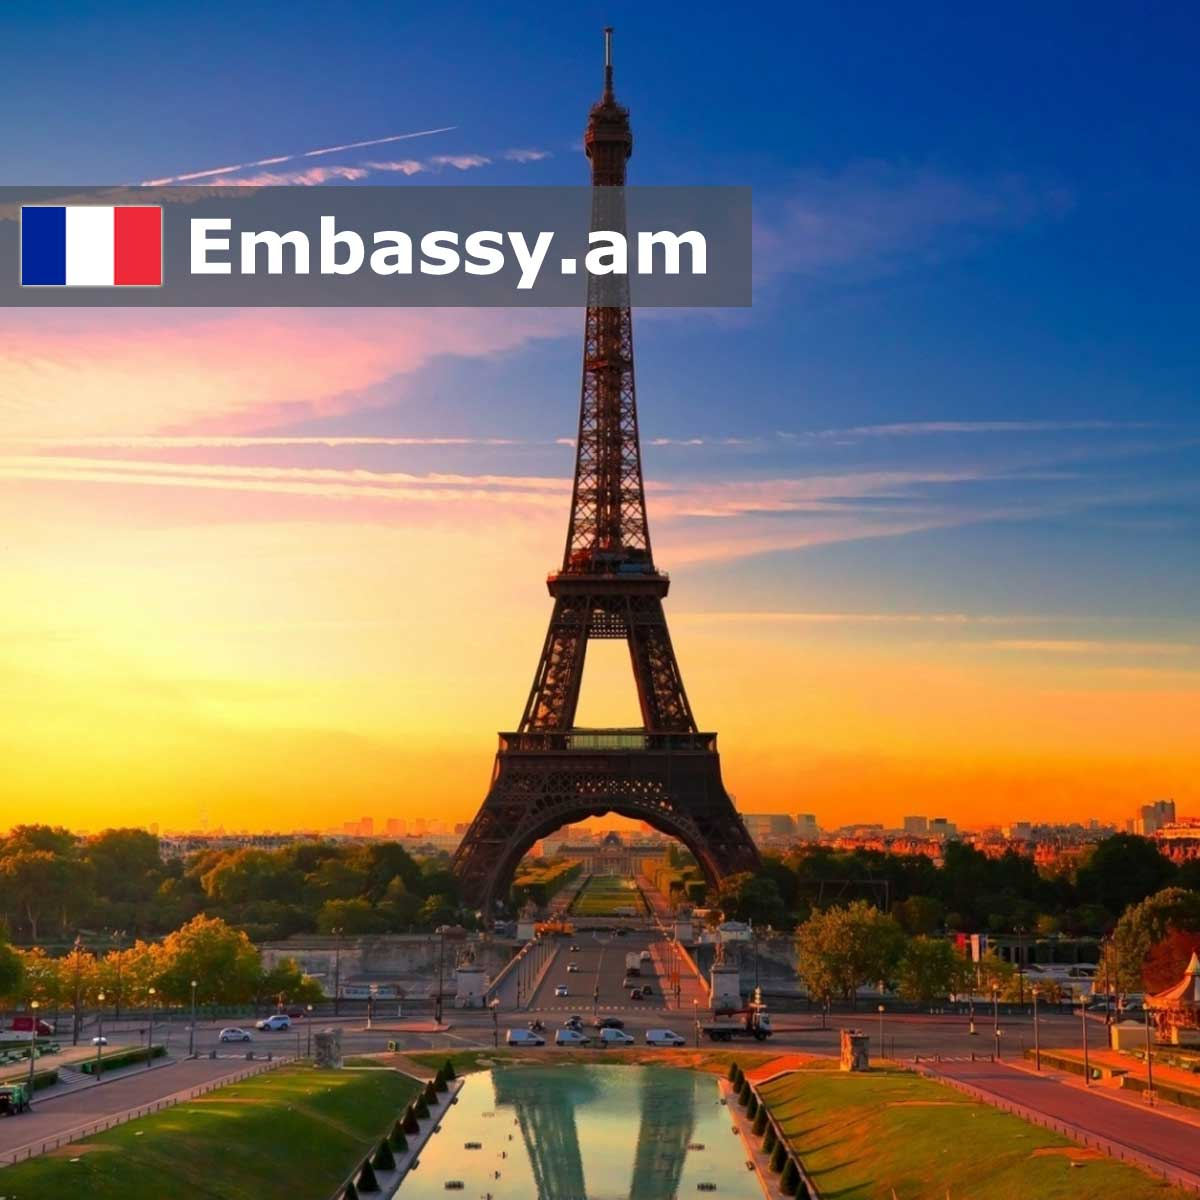 Paris - Hotels in France - Embassy.am